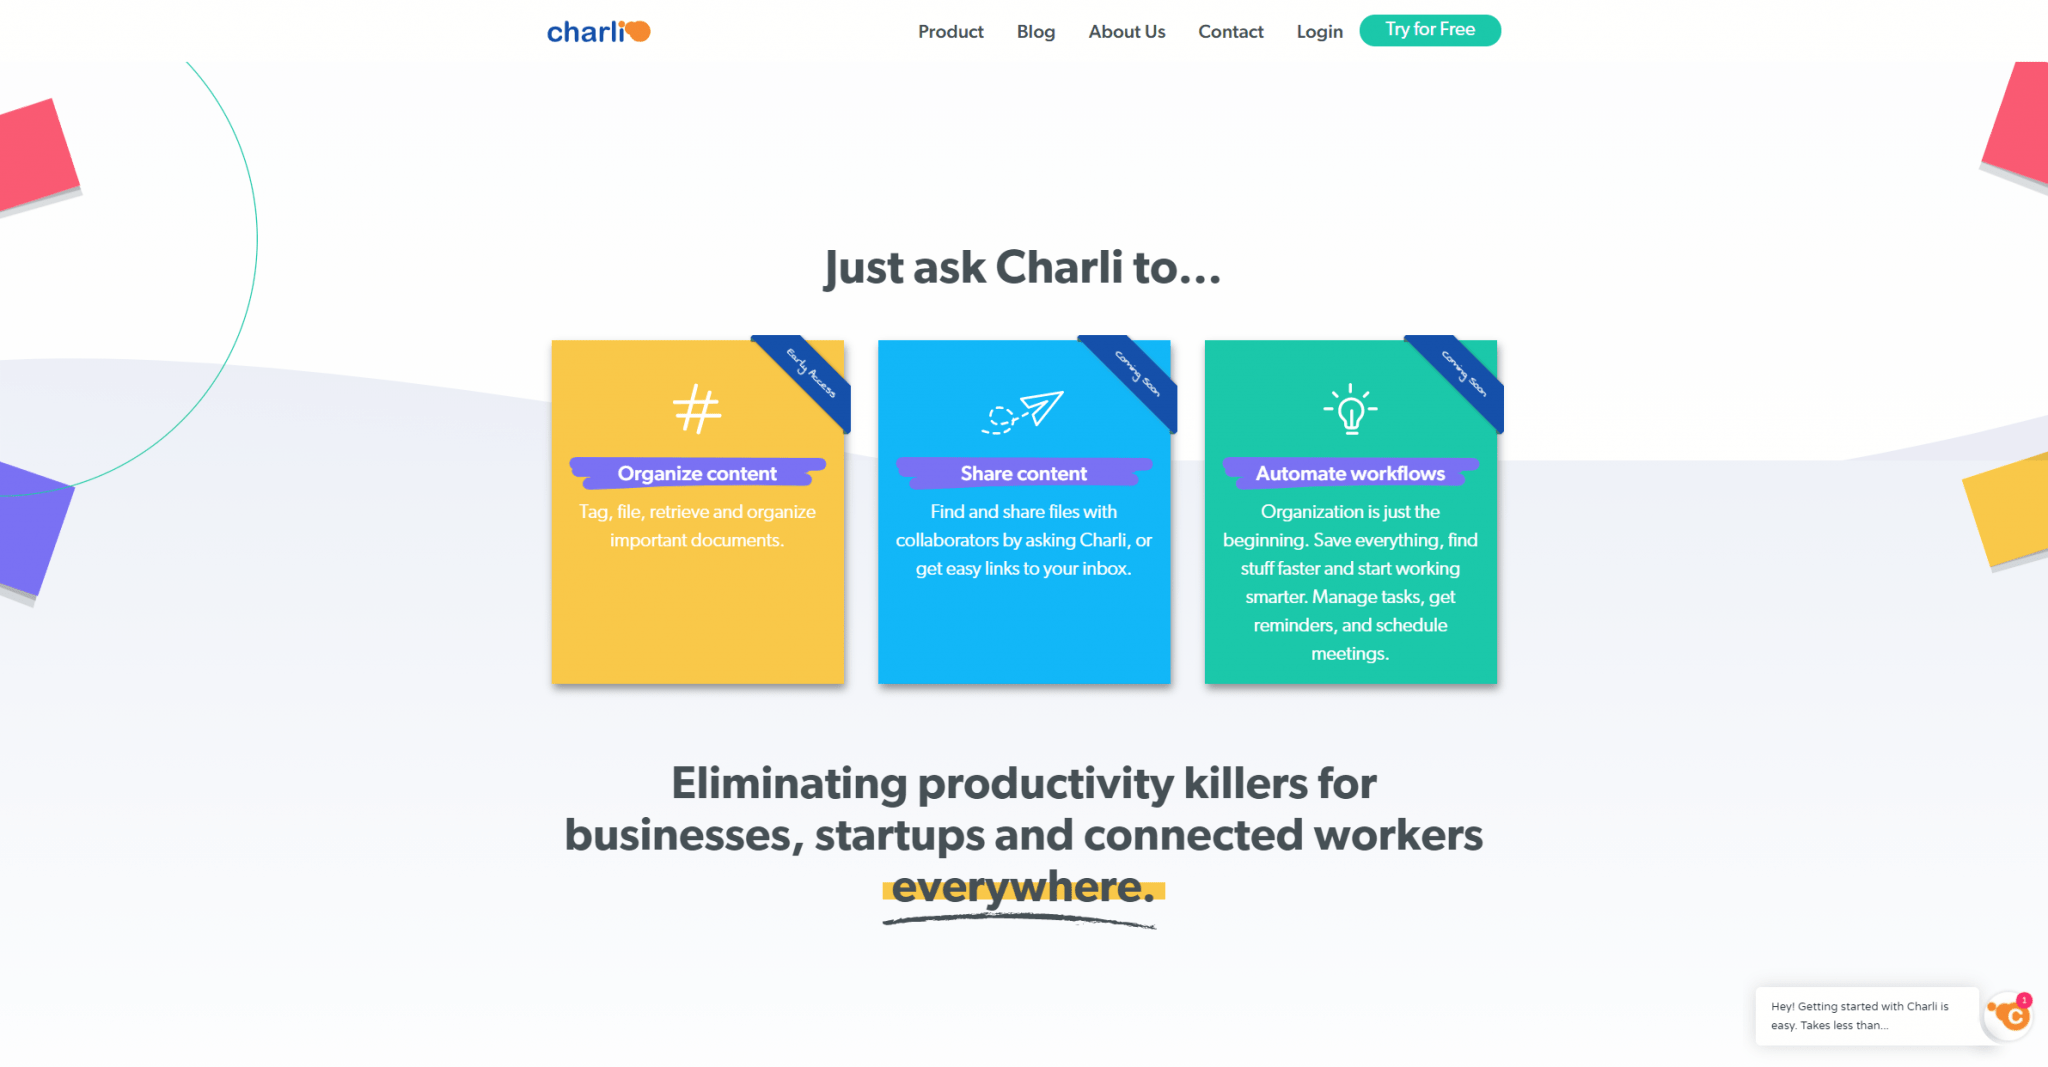 https___www.charli.ai_ Charli AI – Organize, find, and share content in one place_003